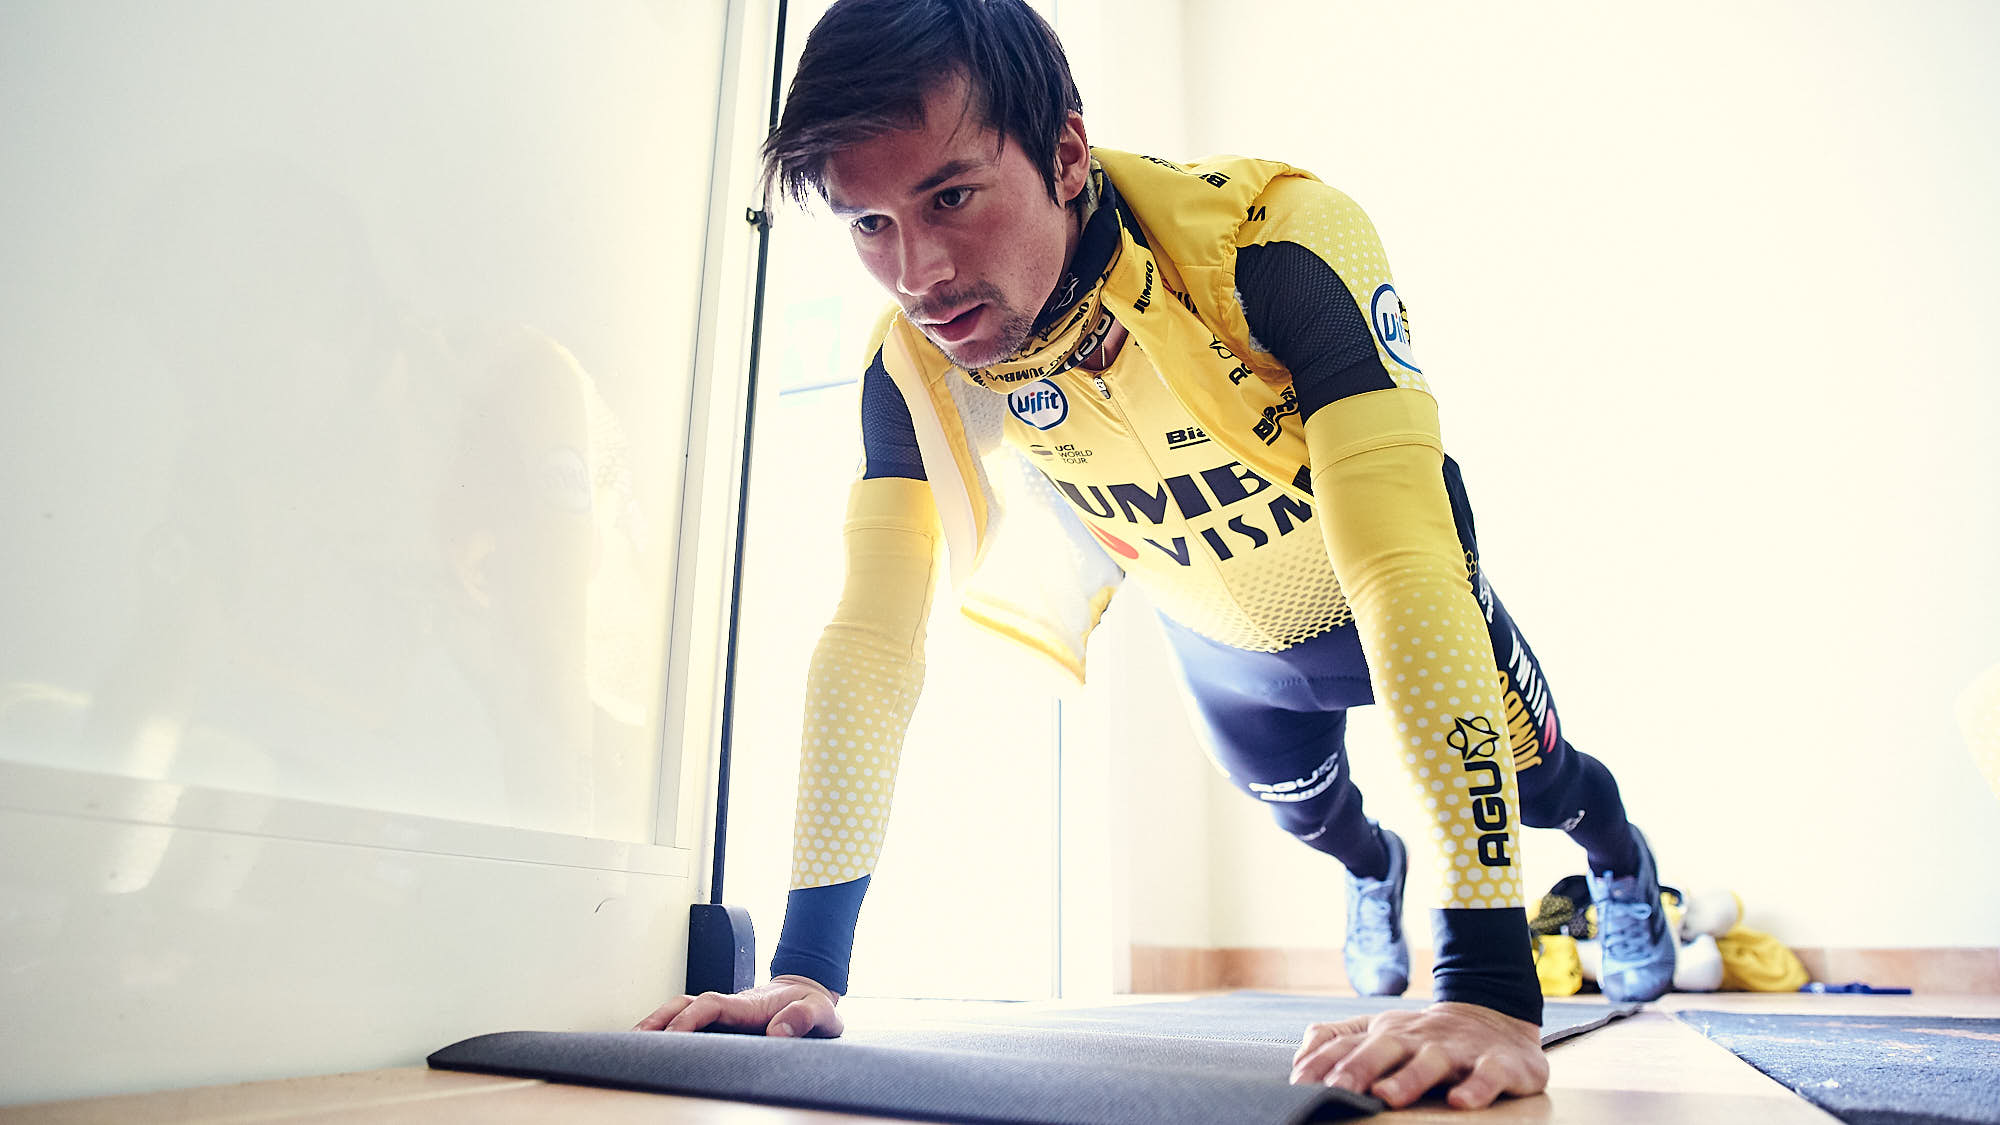 Jumbo-Visma cyclist Primoz Roglic during a core session